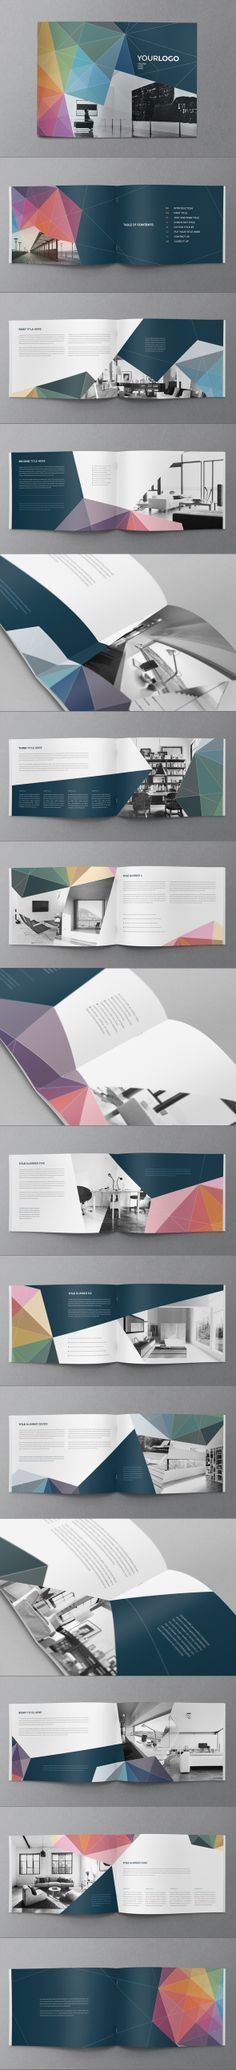 Multicolor Modern Brochure. Download here: http://graphicriver.net/item/multicolor-modern-brochure/7436397?ref=abradesign #design #brochure Latest Modern Web Designs. http://webworksagency.com